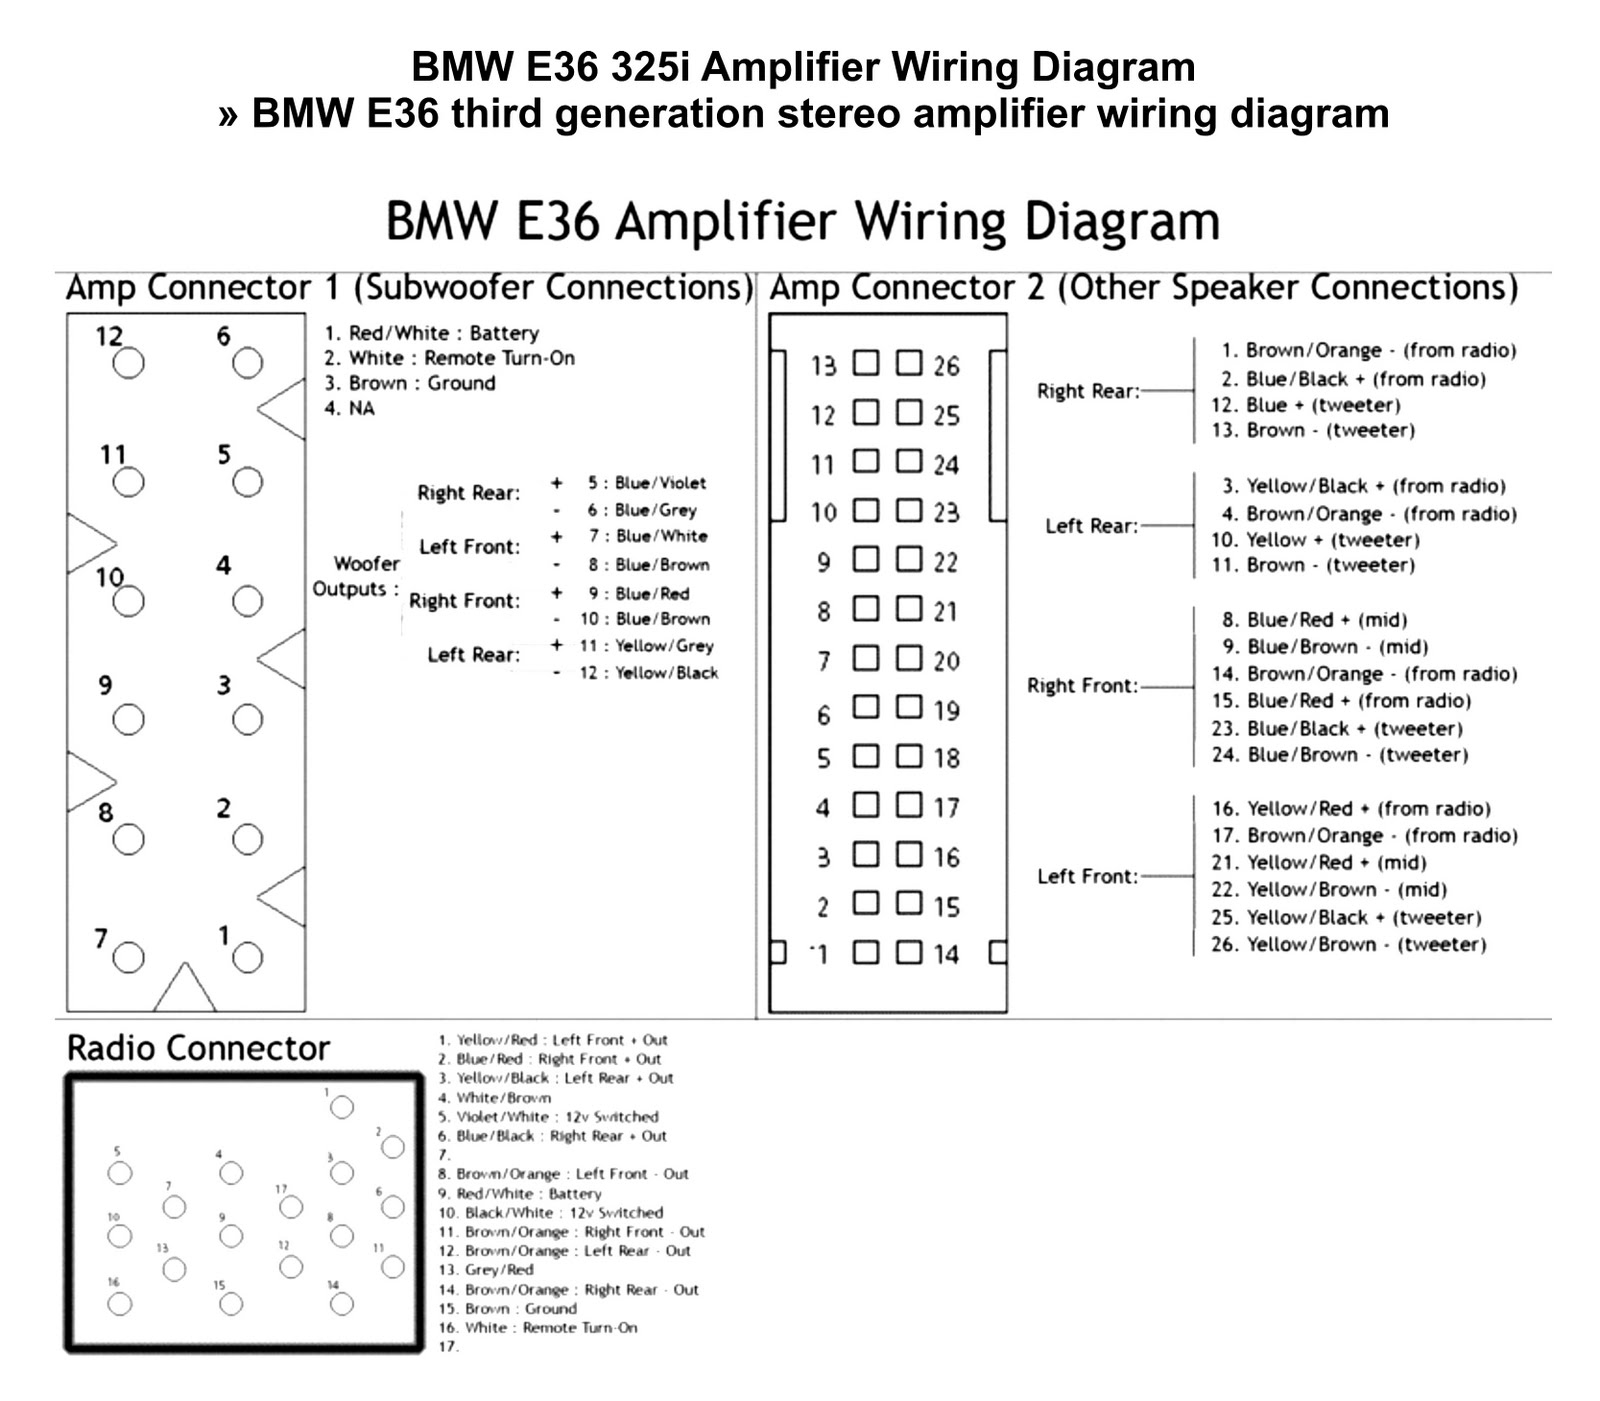 Amusing bmw e46 engine wiring harness diagram ideas best image famous e38 wiring diagram pictures electrical and wiring diagram bmw 318i e46 asfbconference2016 Images